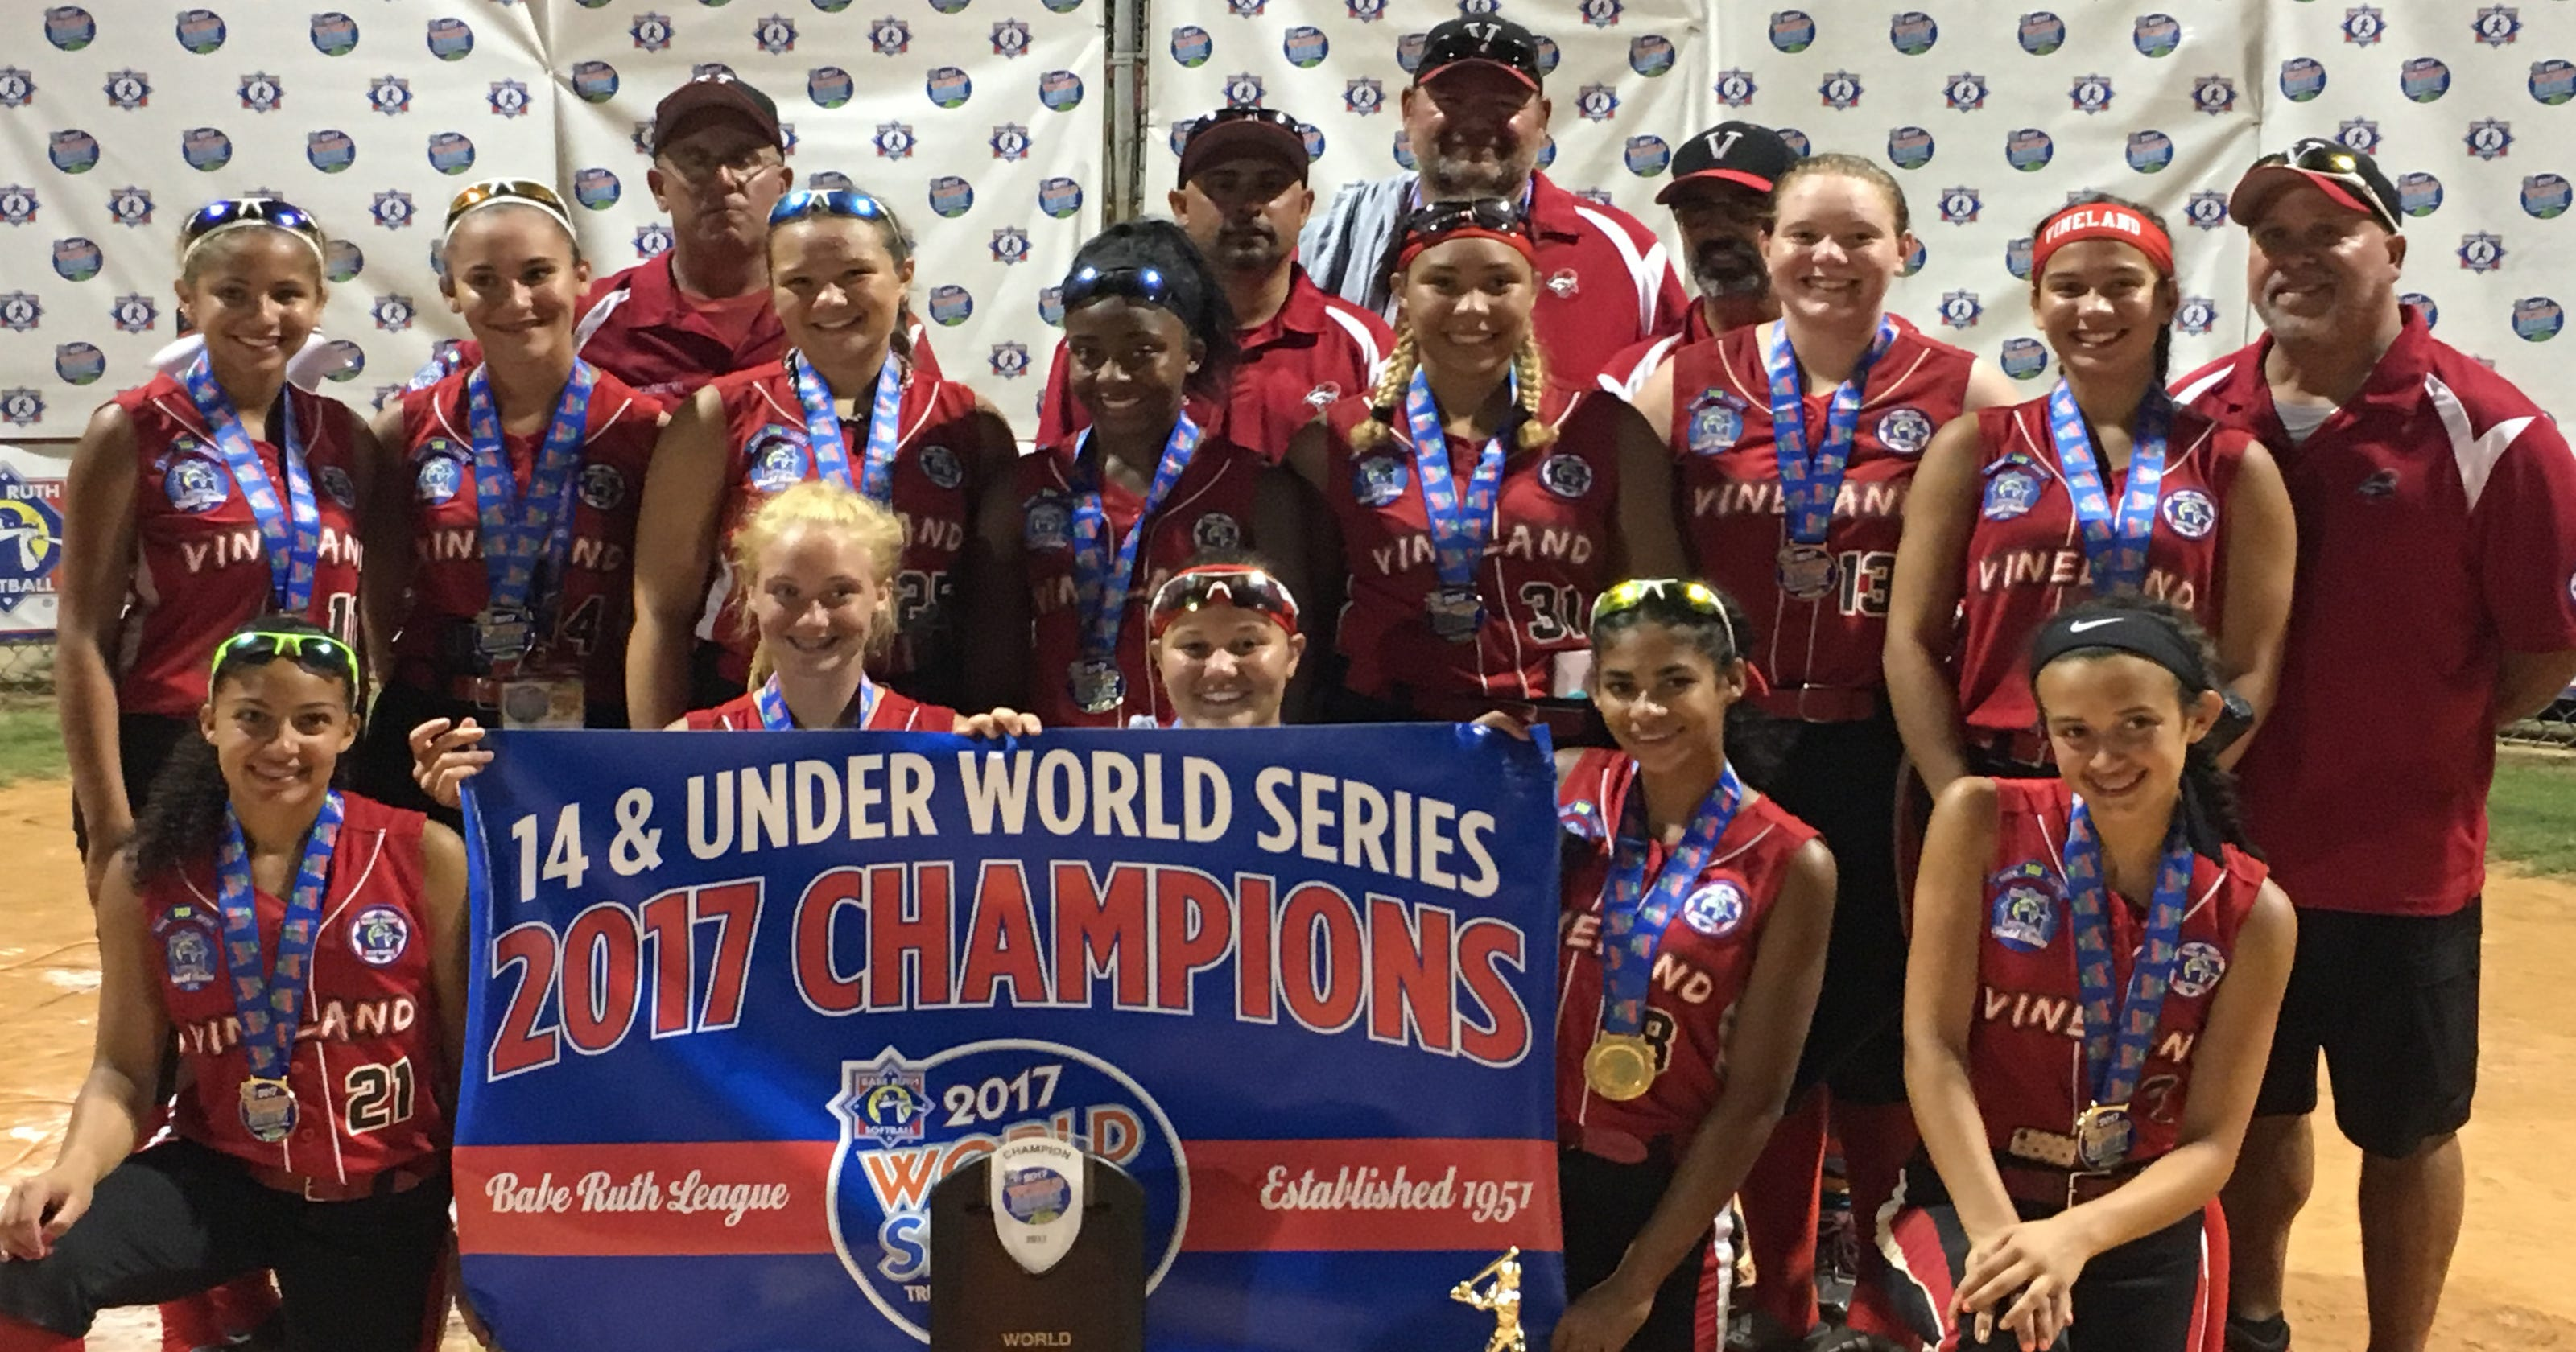 Softball: Vineland Pigtail 14U All-Stars win national title in Babe